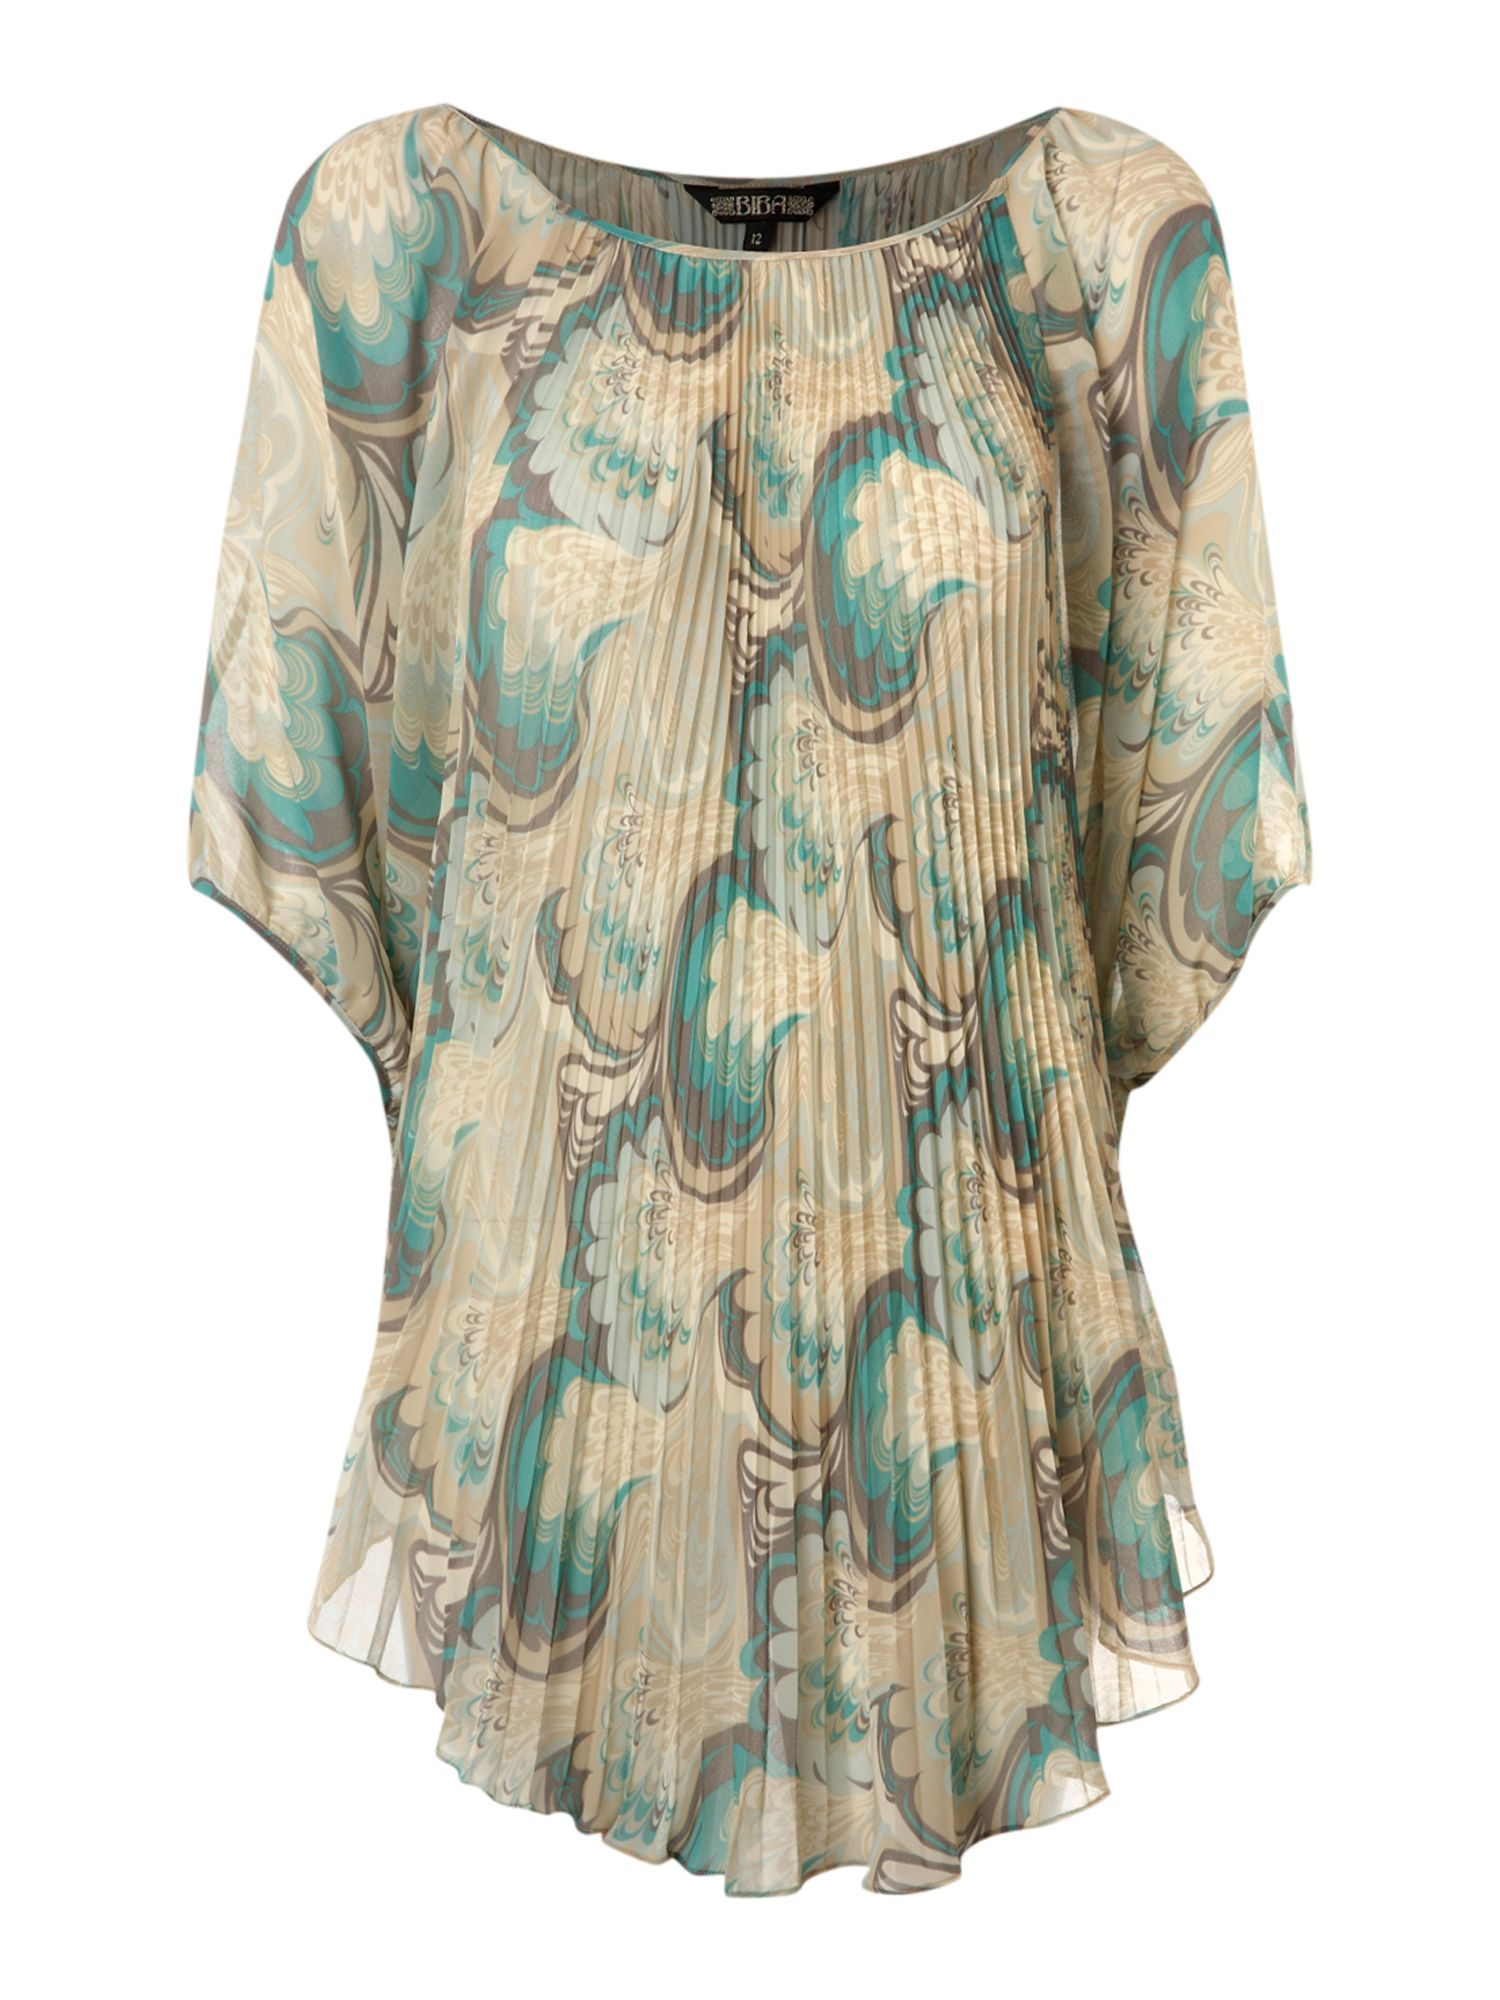 Biba Womens Biba Printed pleated volume blouse, product image